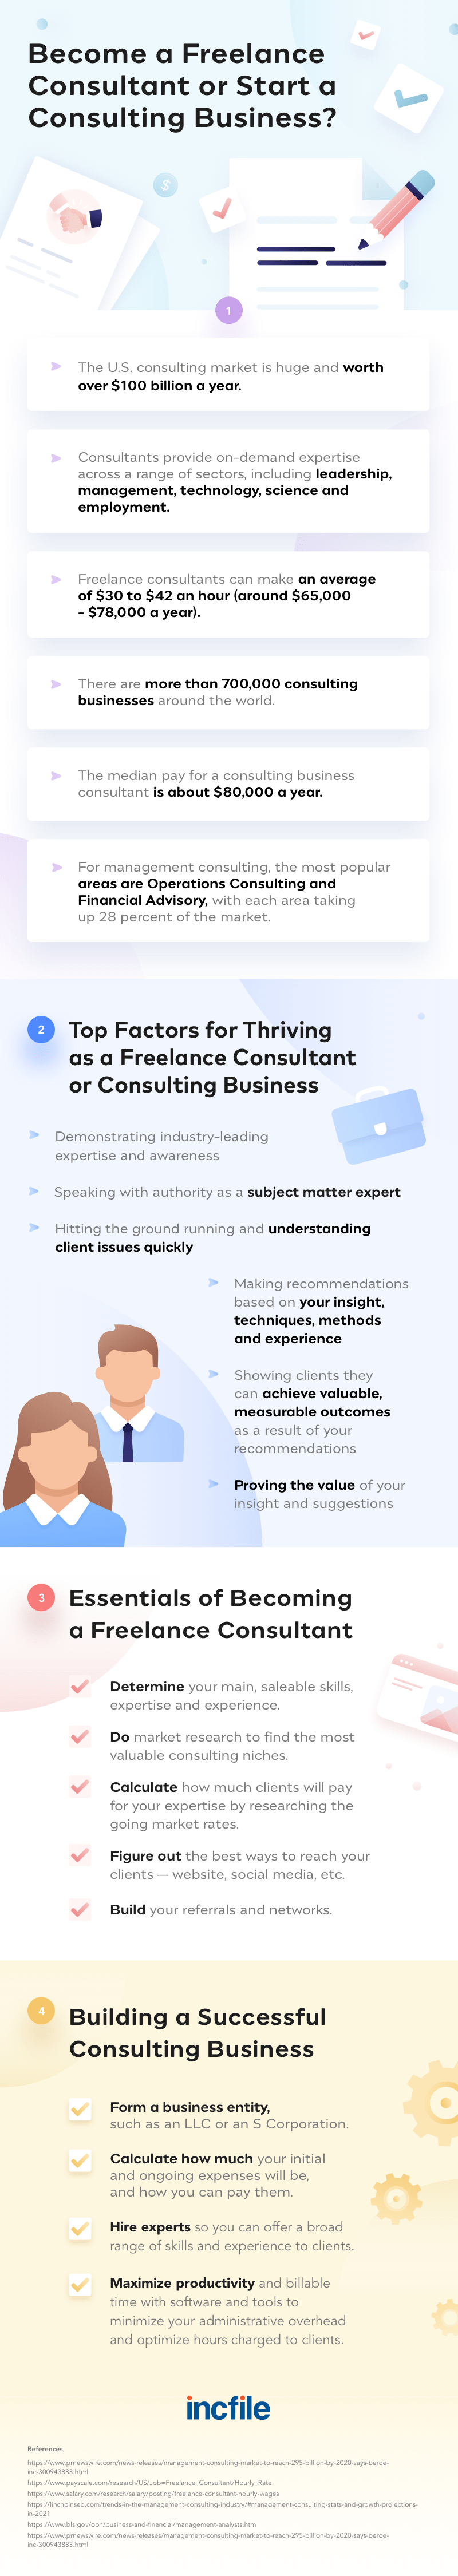 freelance consulting vs starting a consulting business